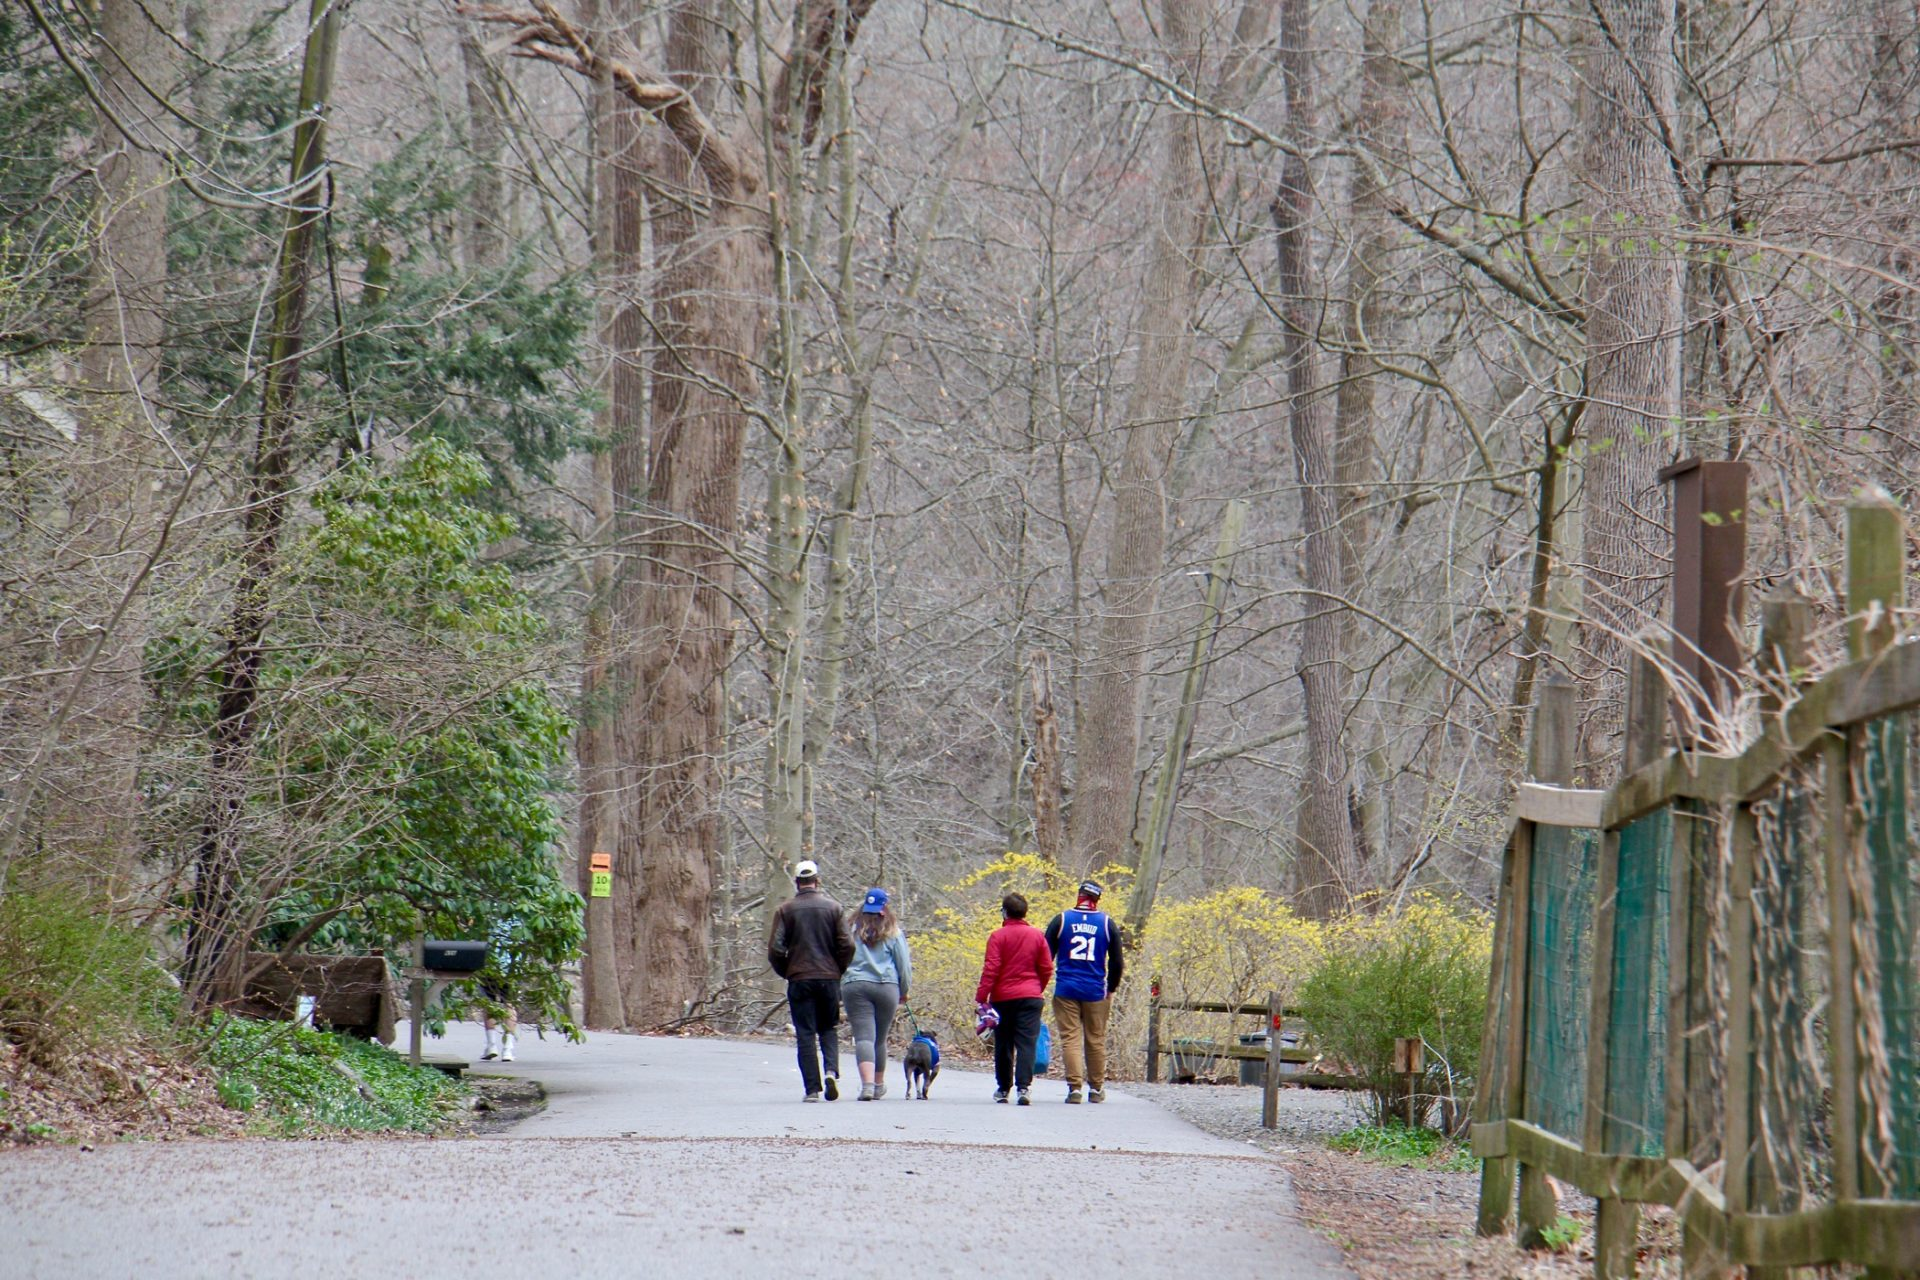 Hikers in Ridley State Park in Media, Pa.